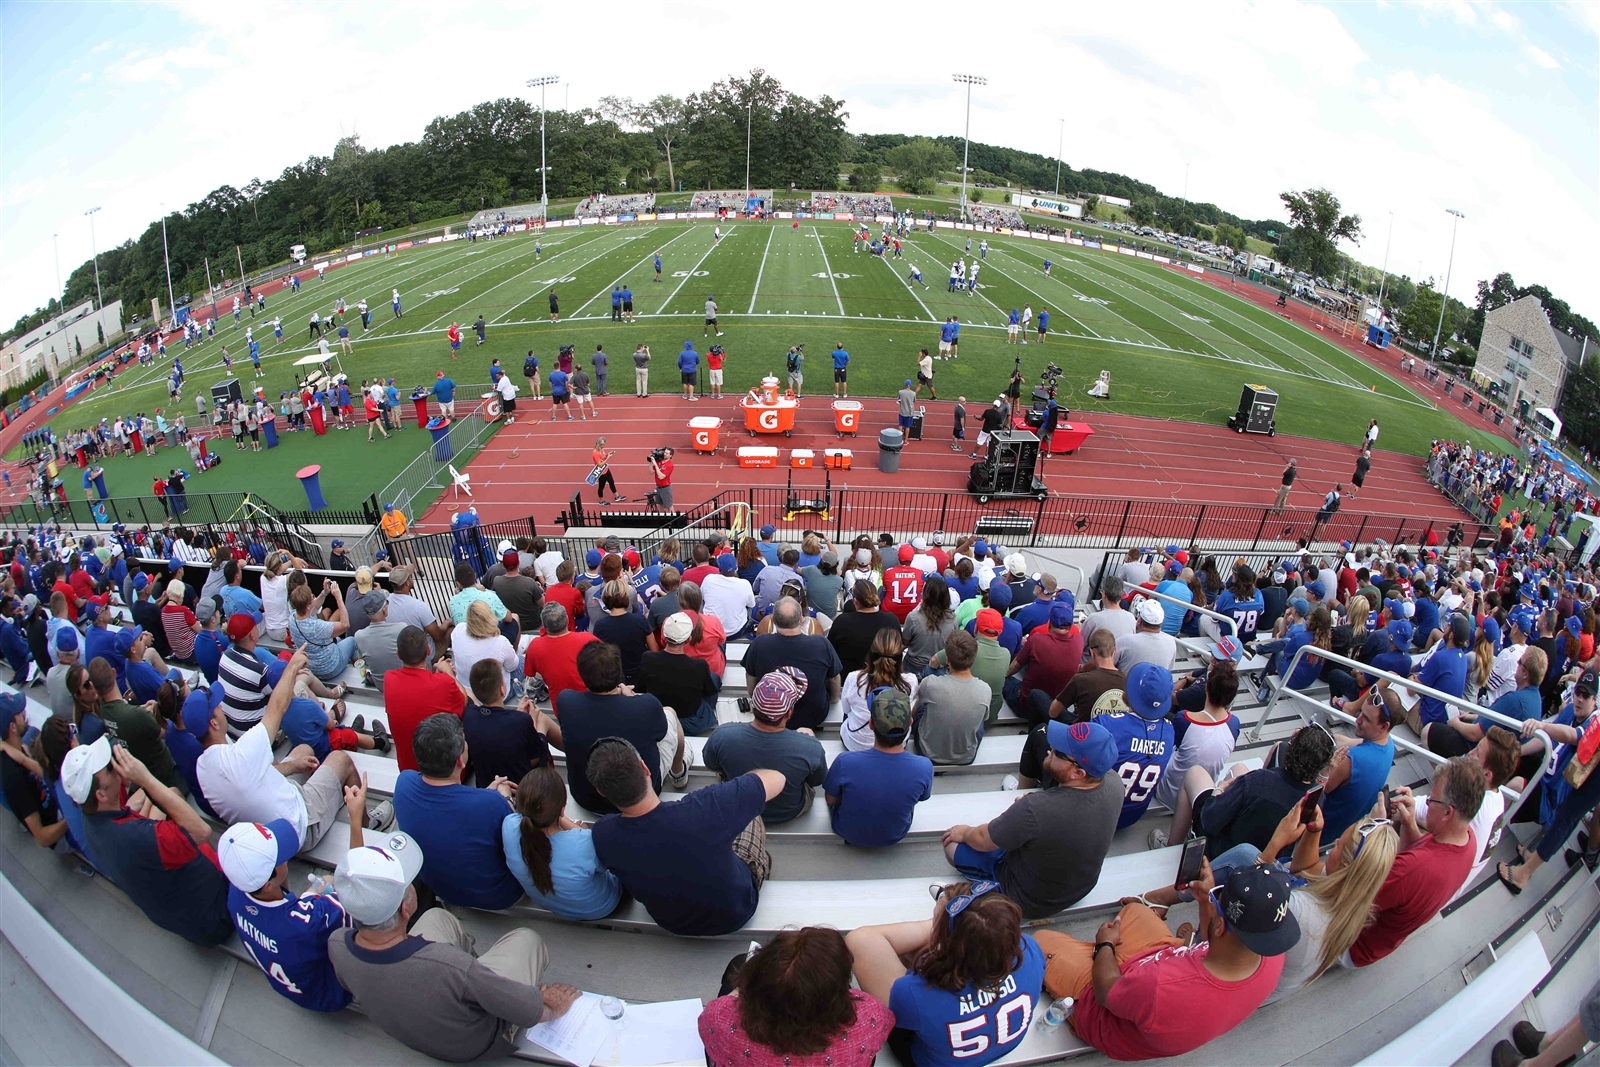 Buffalo Bills fans packed the stadium to watch the the first day of the Bills 2017 training camp at St. John Fisher.